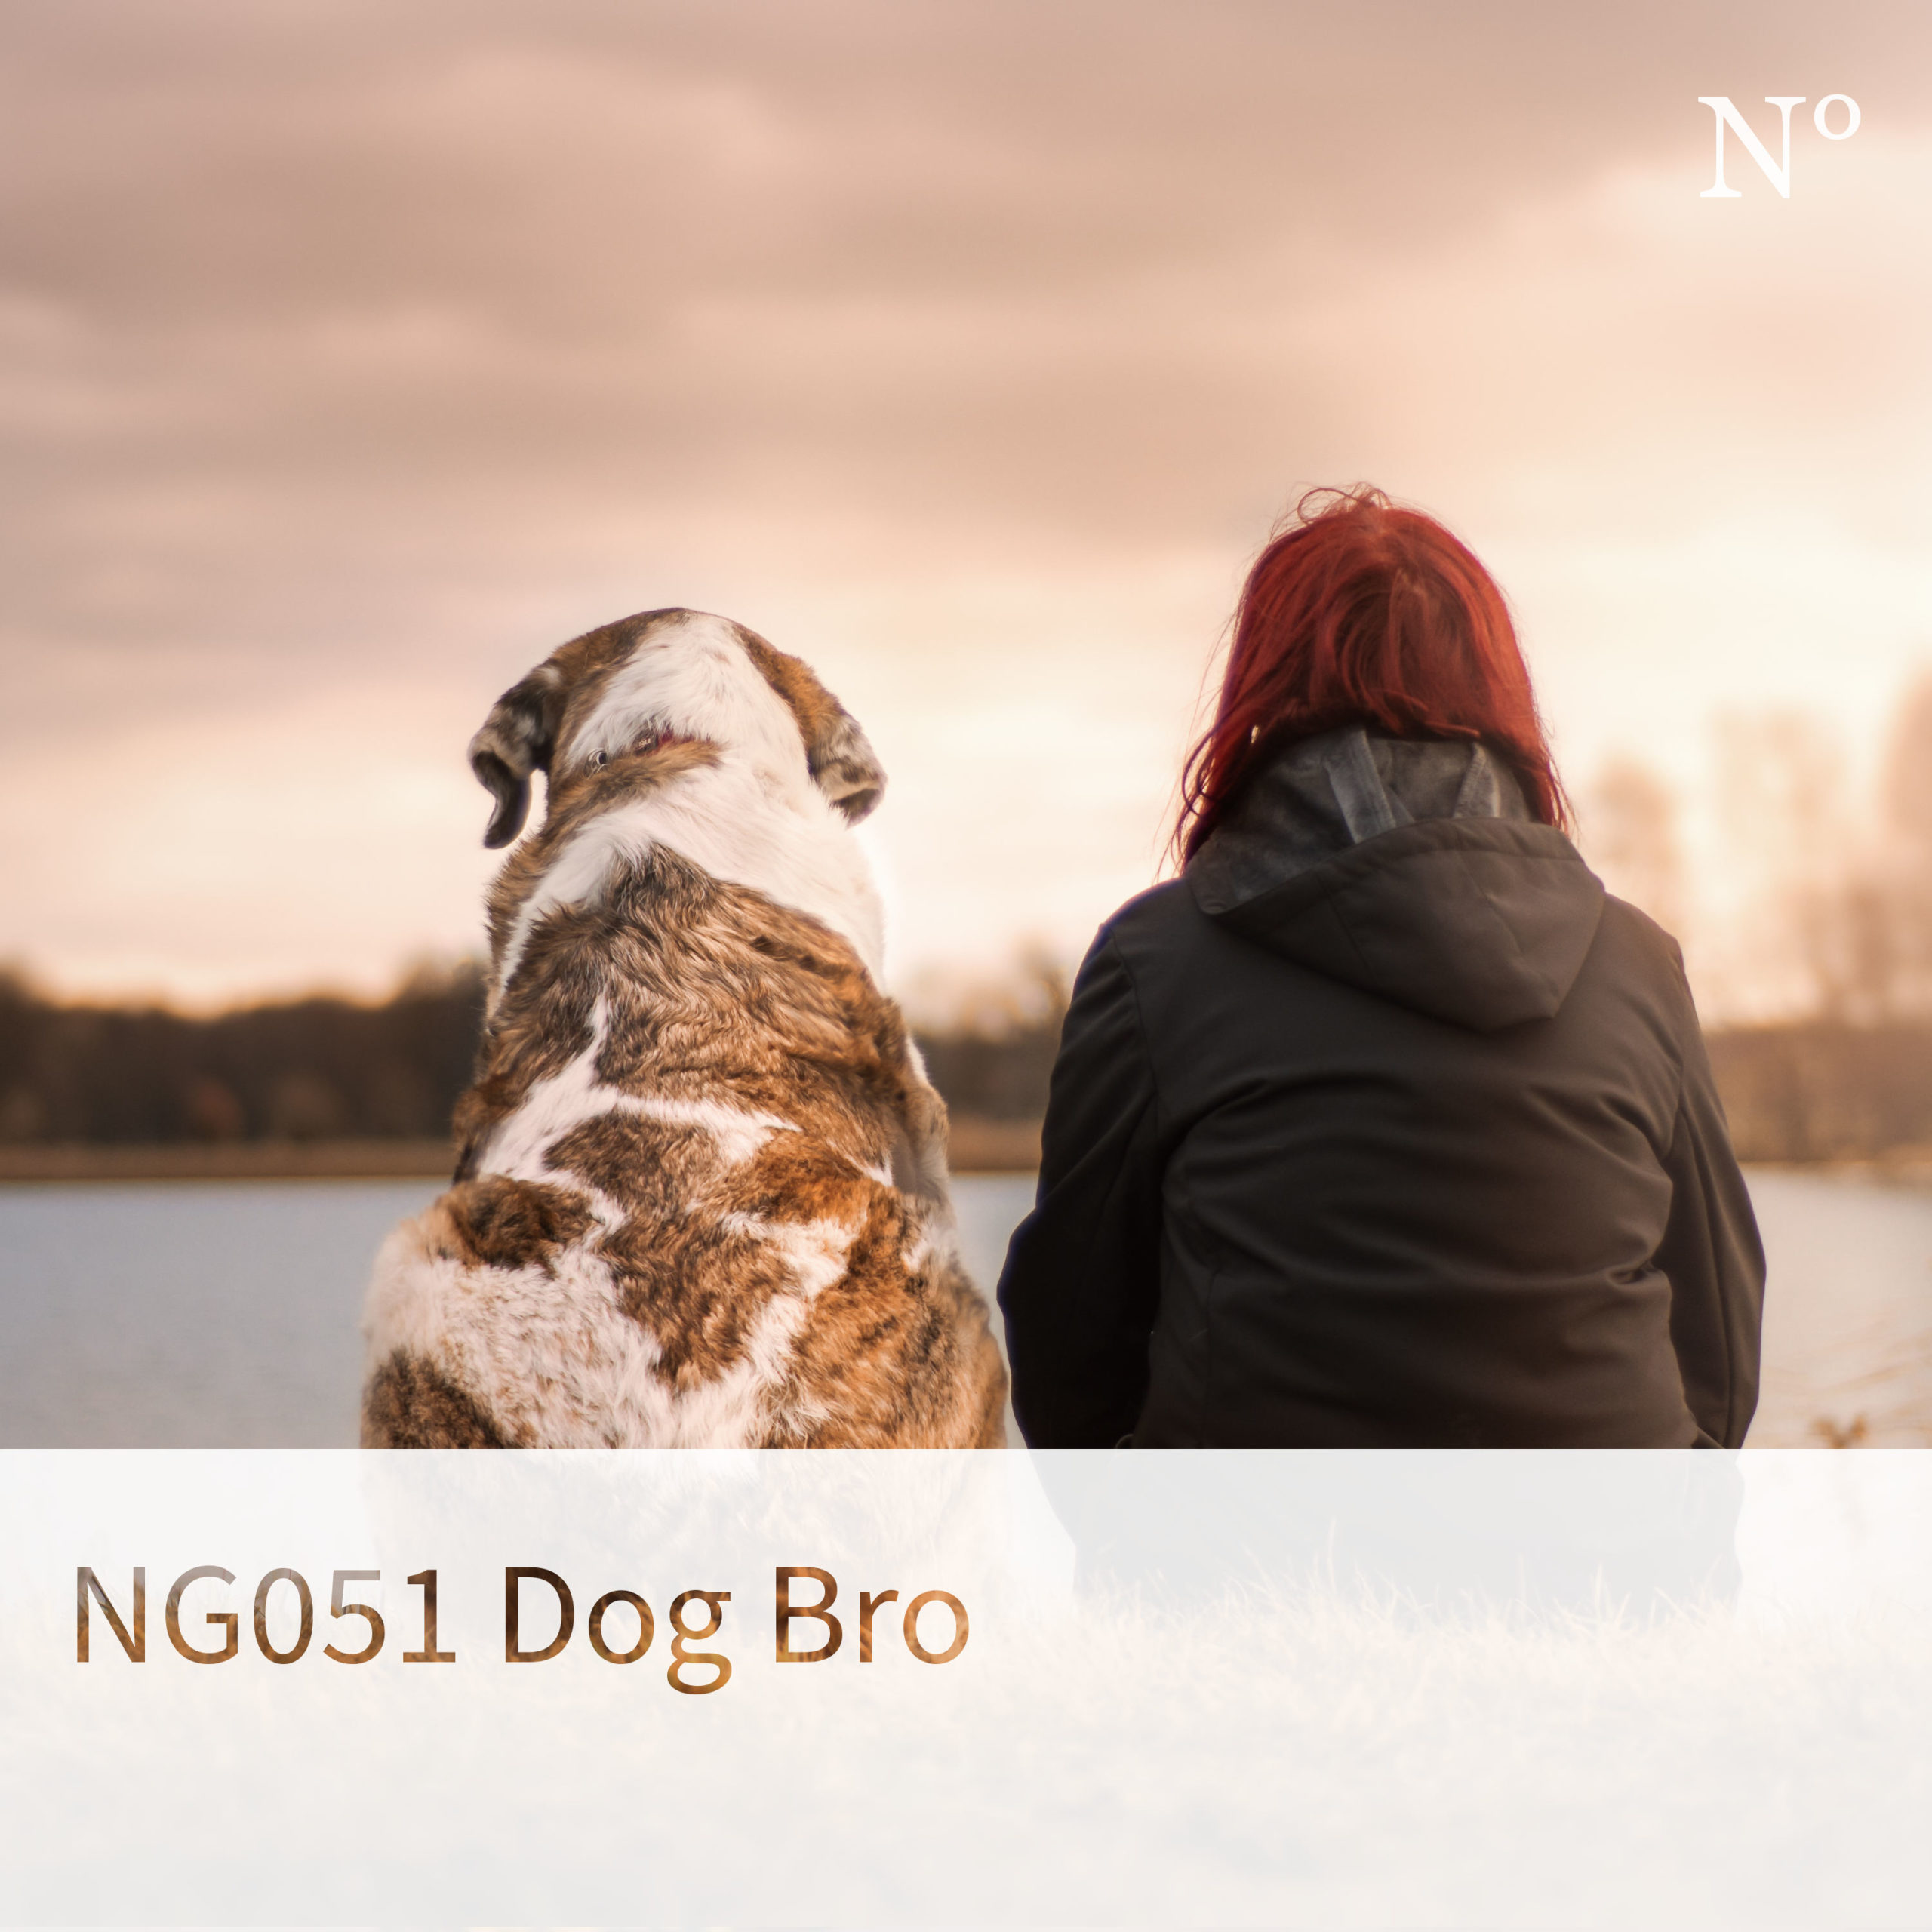 NG051 Dog Bro, Episoden-Cover